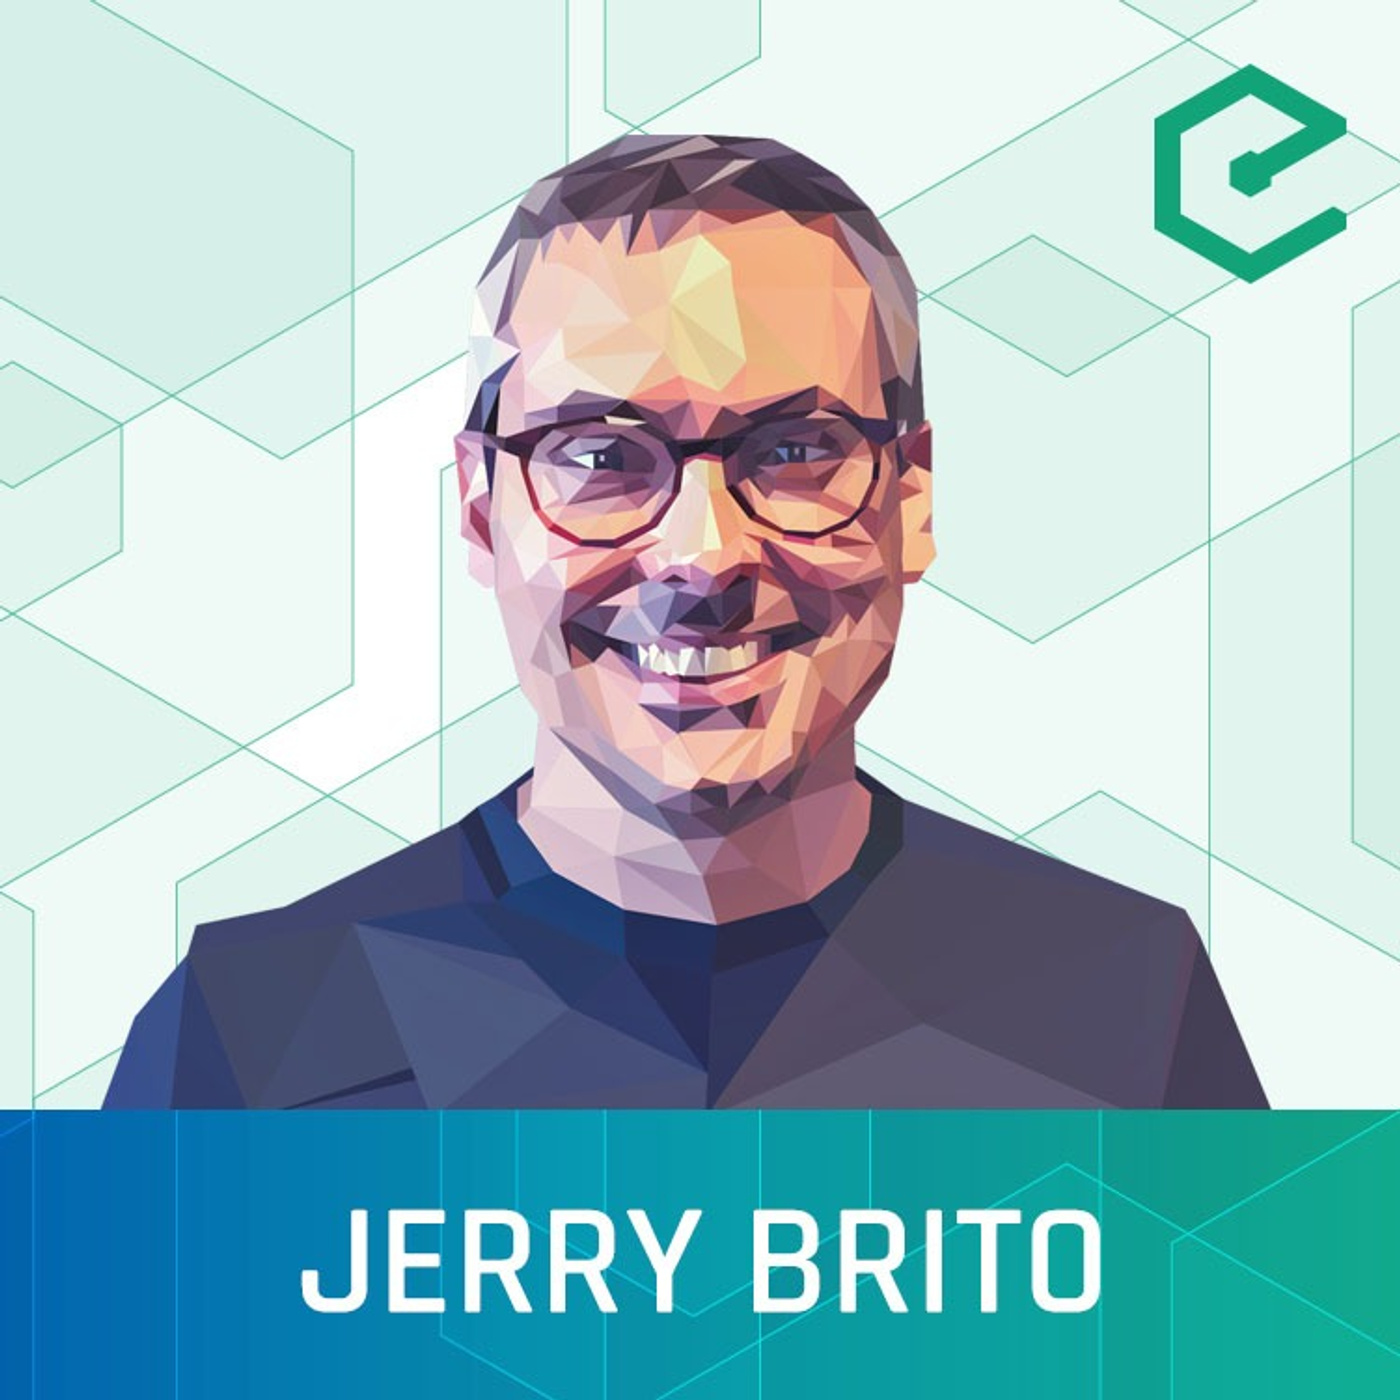 Jerry Brito: The Case for Electronic Cash in an Open and Free Society